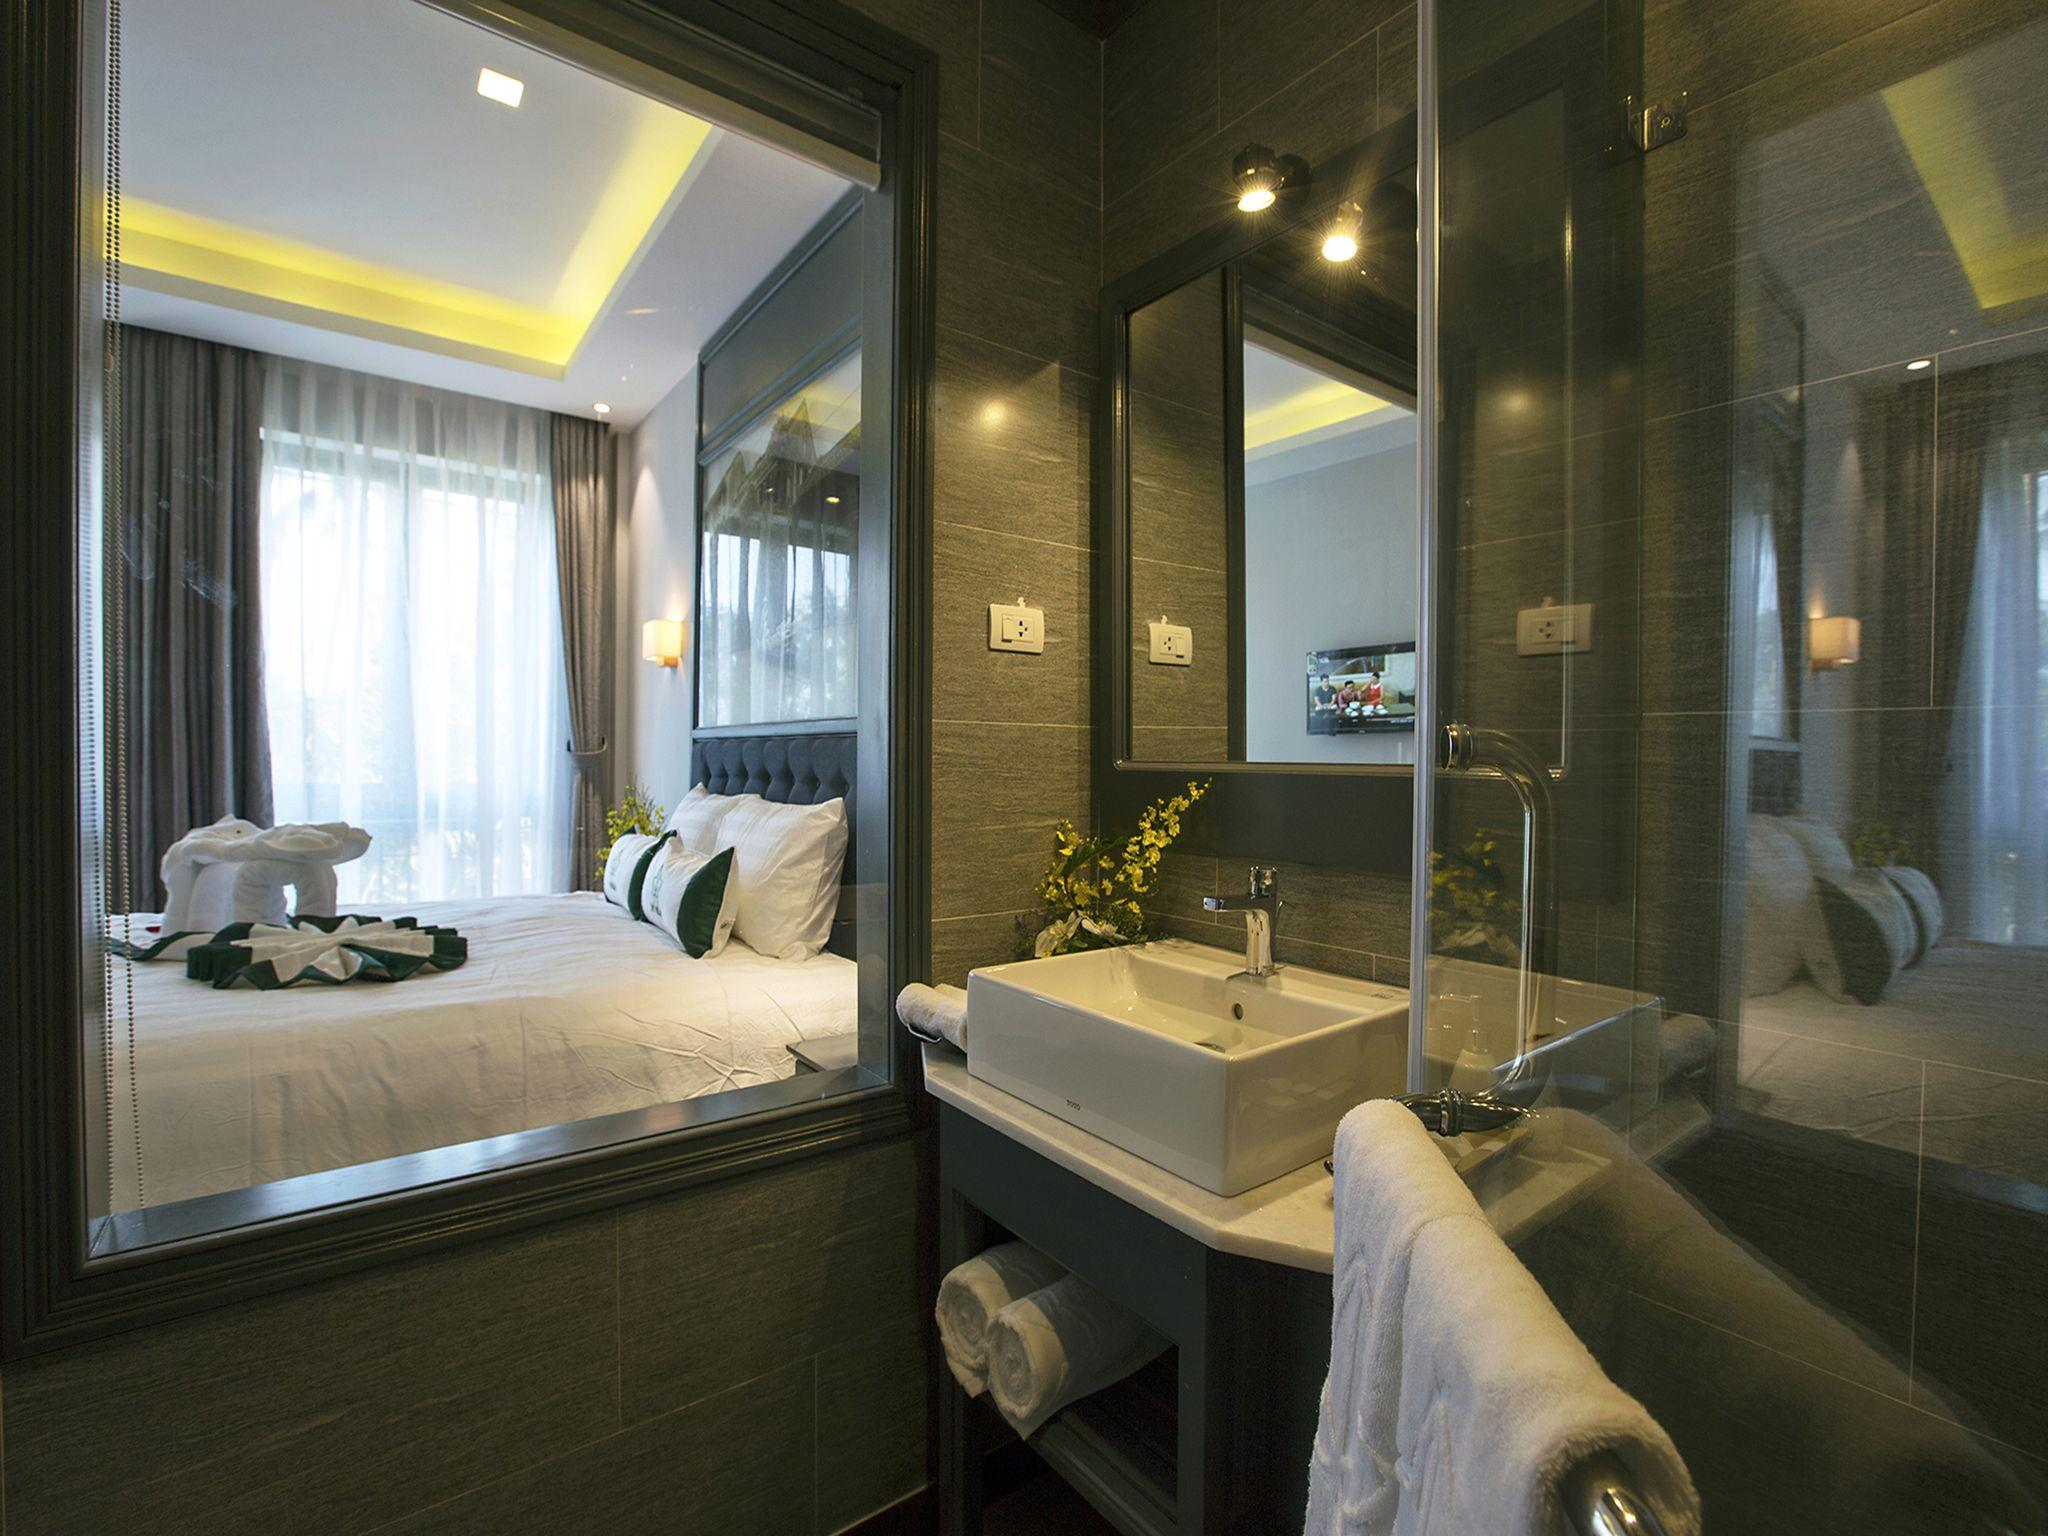 Ivy Villa One Superior Room With Double Bed 04